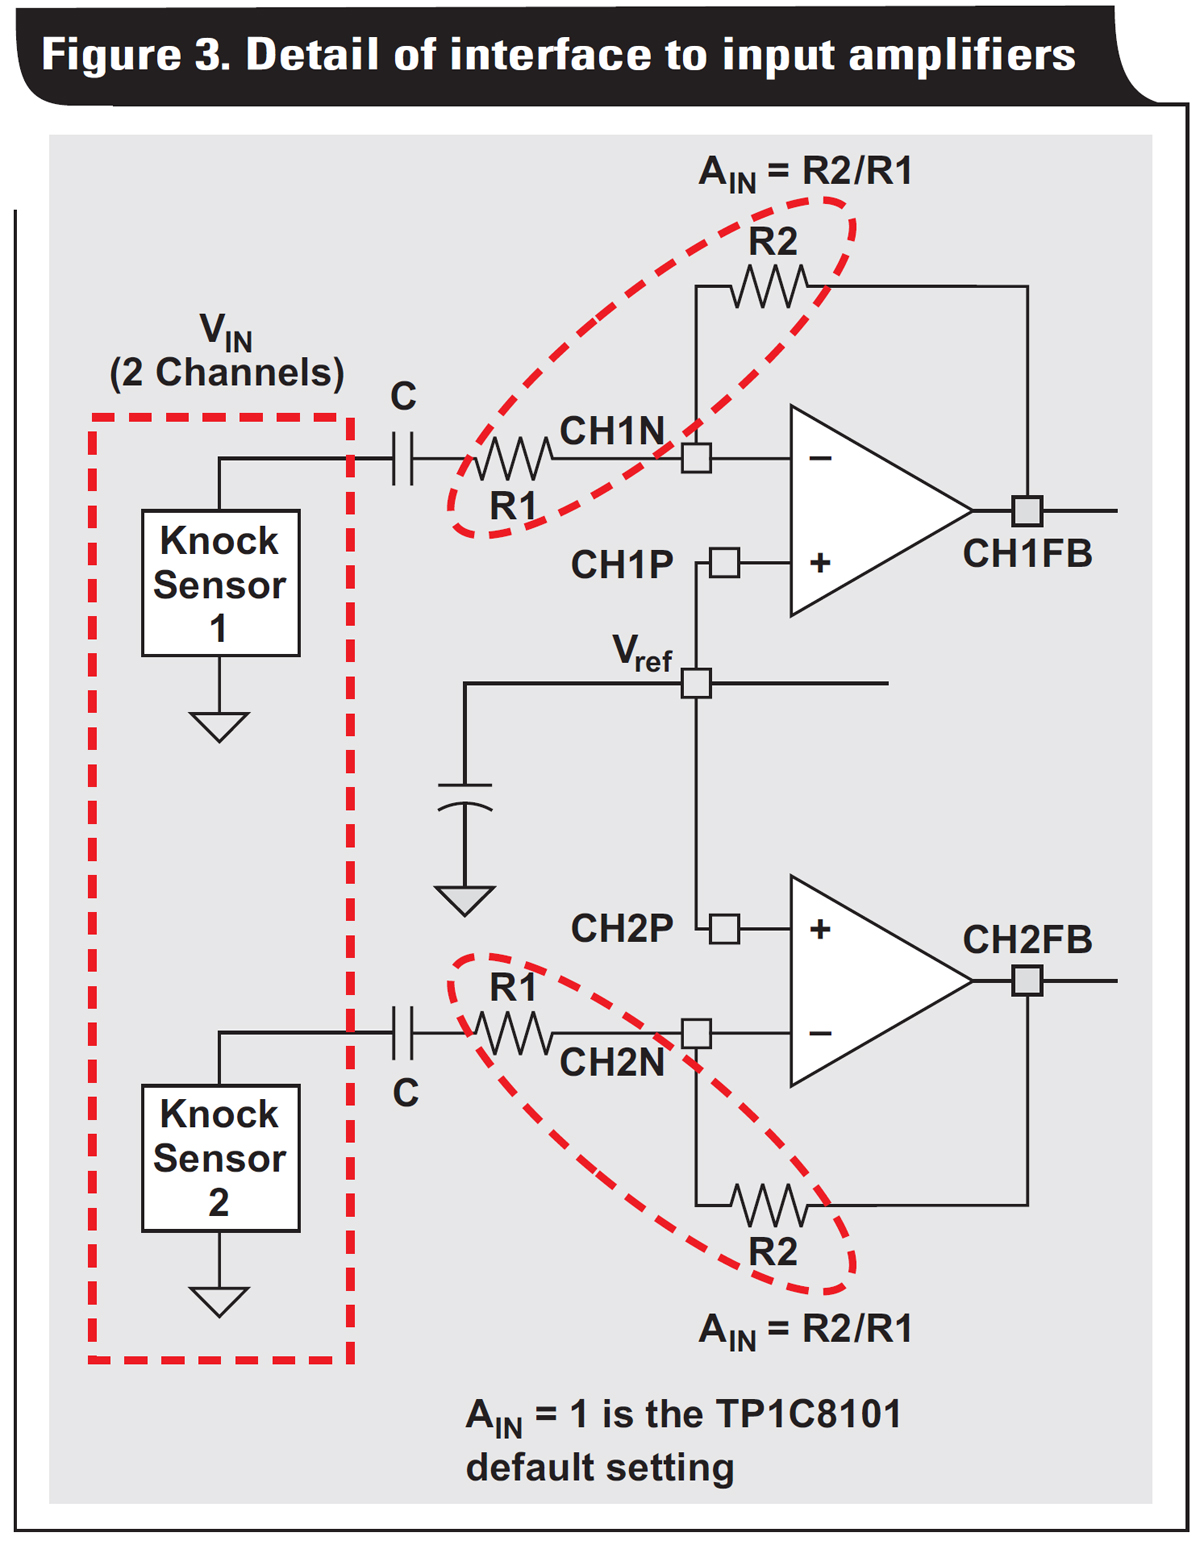 How to set-up a knock-sensor signal-conditioning system